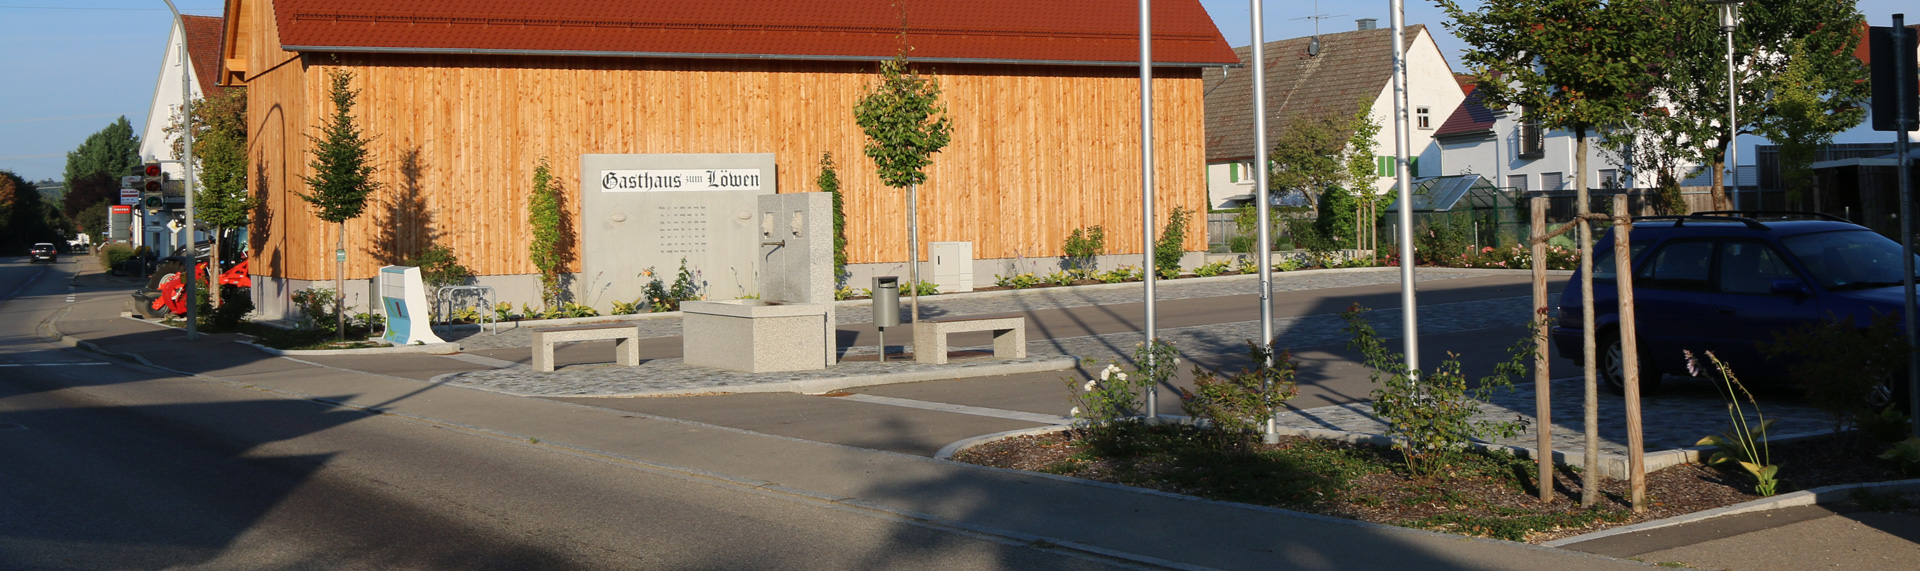 Header Unterroth - Dorfplatz